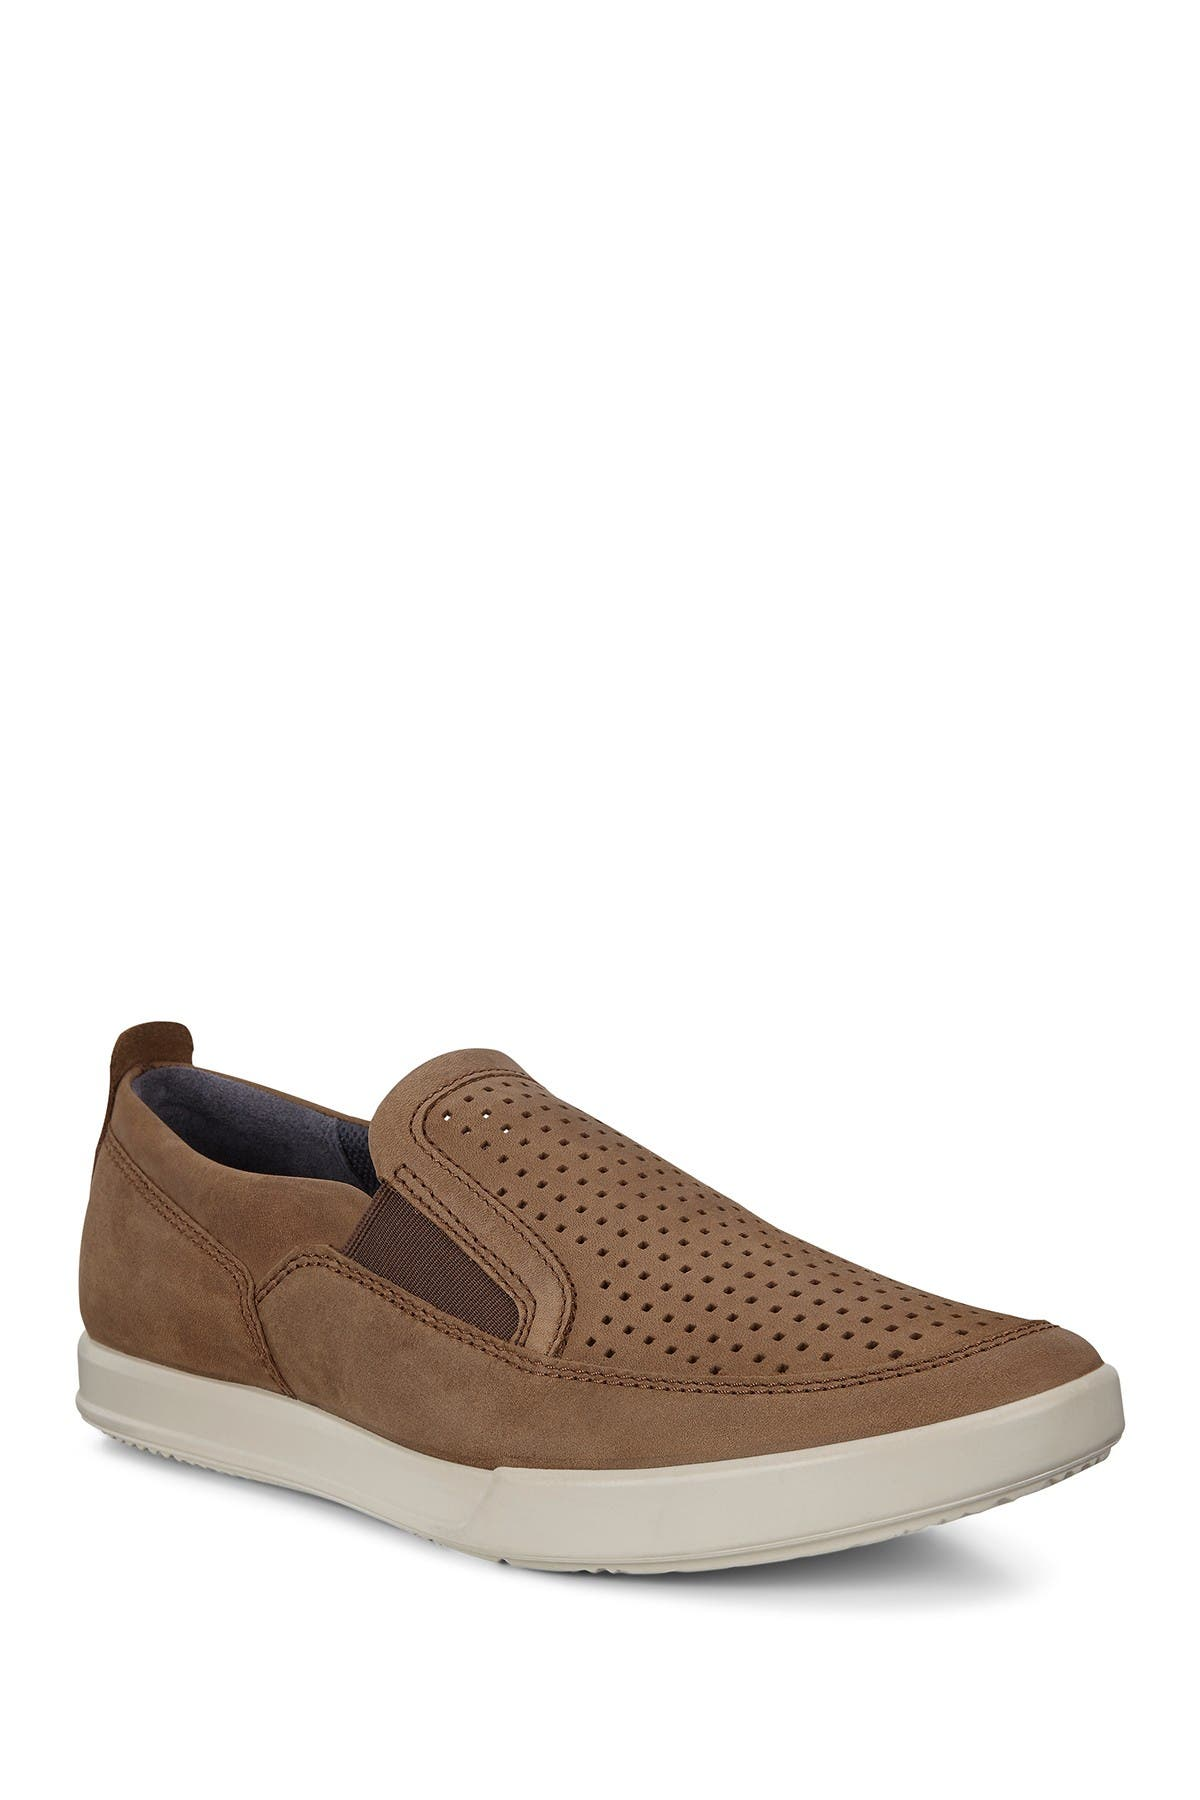 Image of ECCO Cathum Summer Slip-On Sneaker